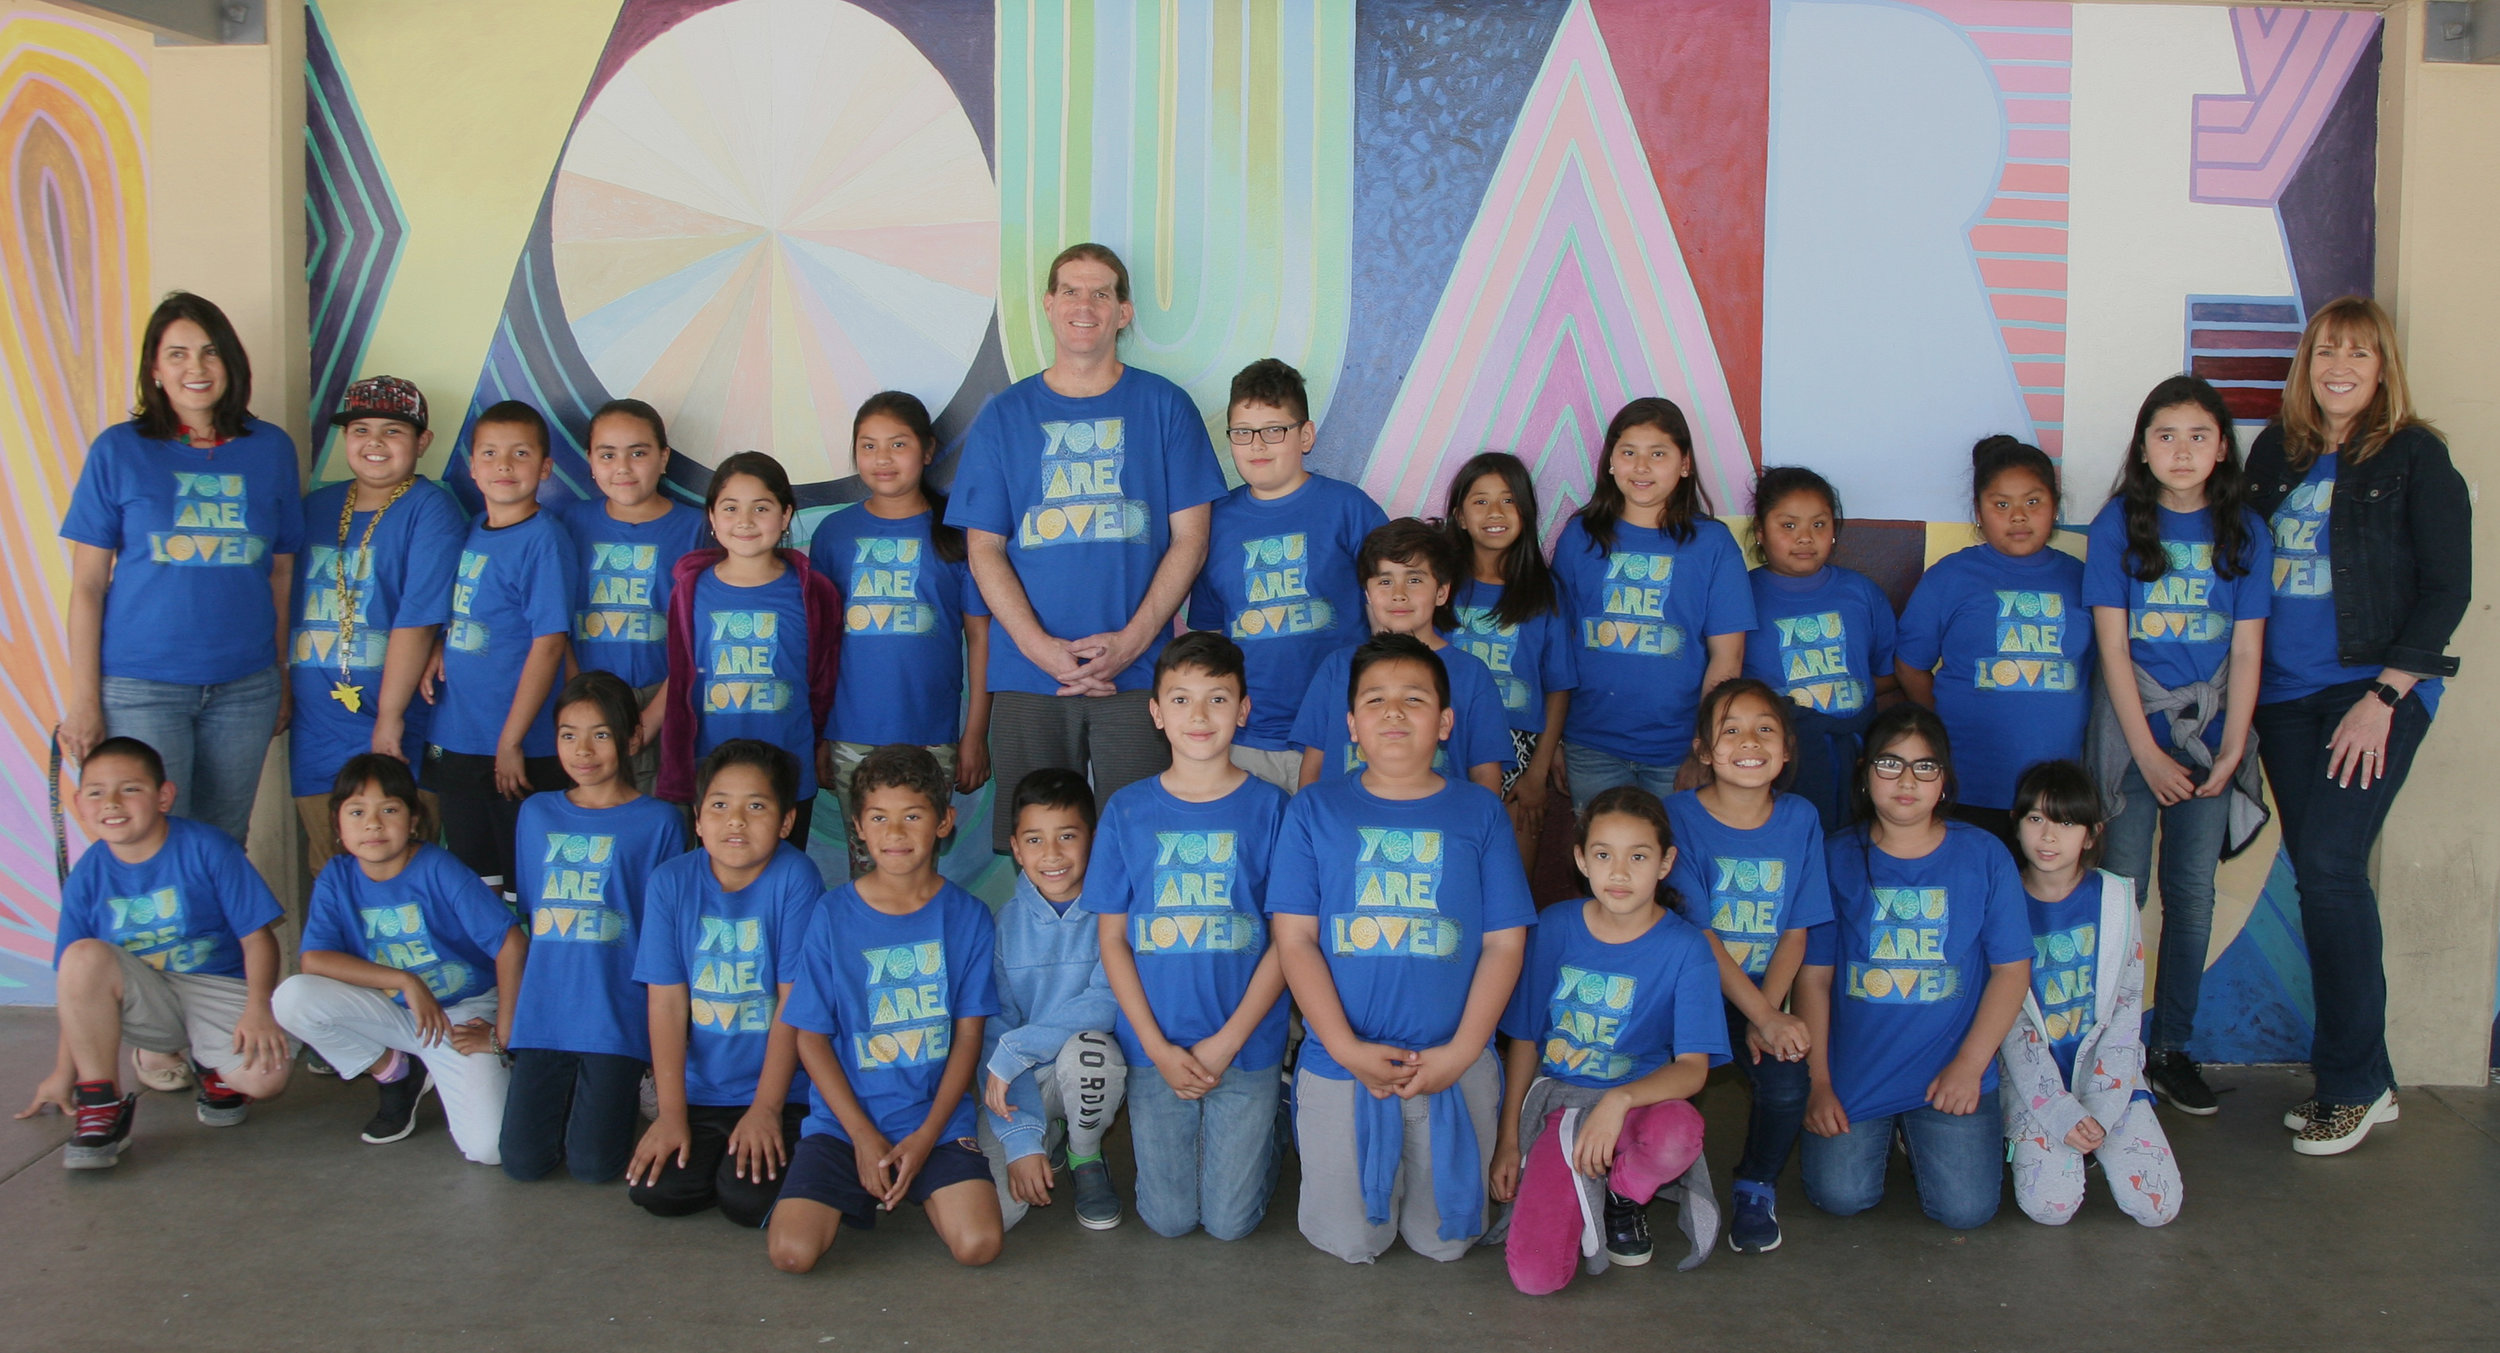 Students show off their brand new YOU ARE LOVED t-shirts, gifted by a local sponsor. Murray Elementary, Azusa, CA